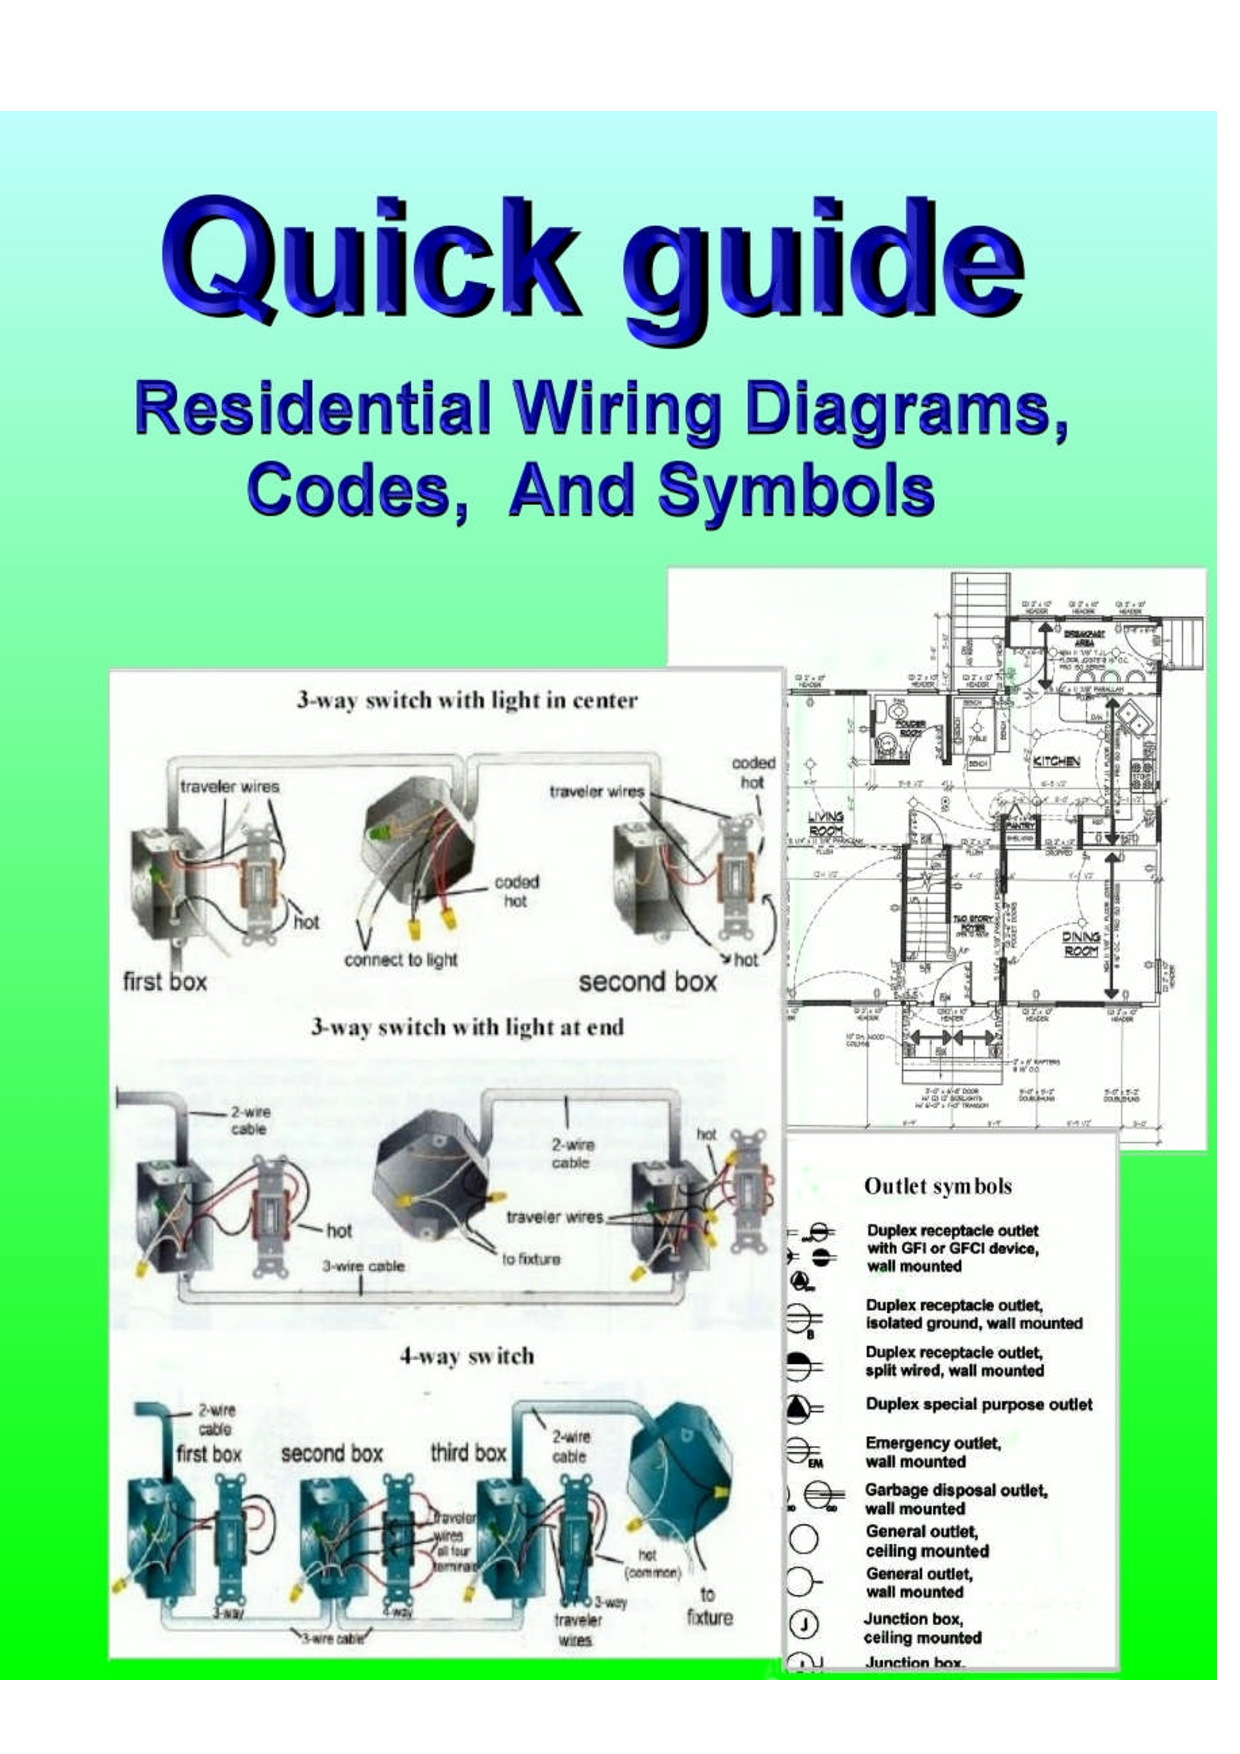 Residential Single Phase House Wiring Diagram Pdf